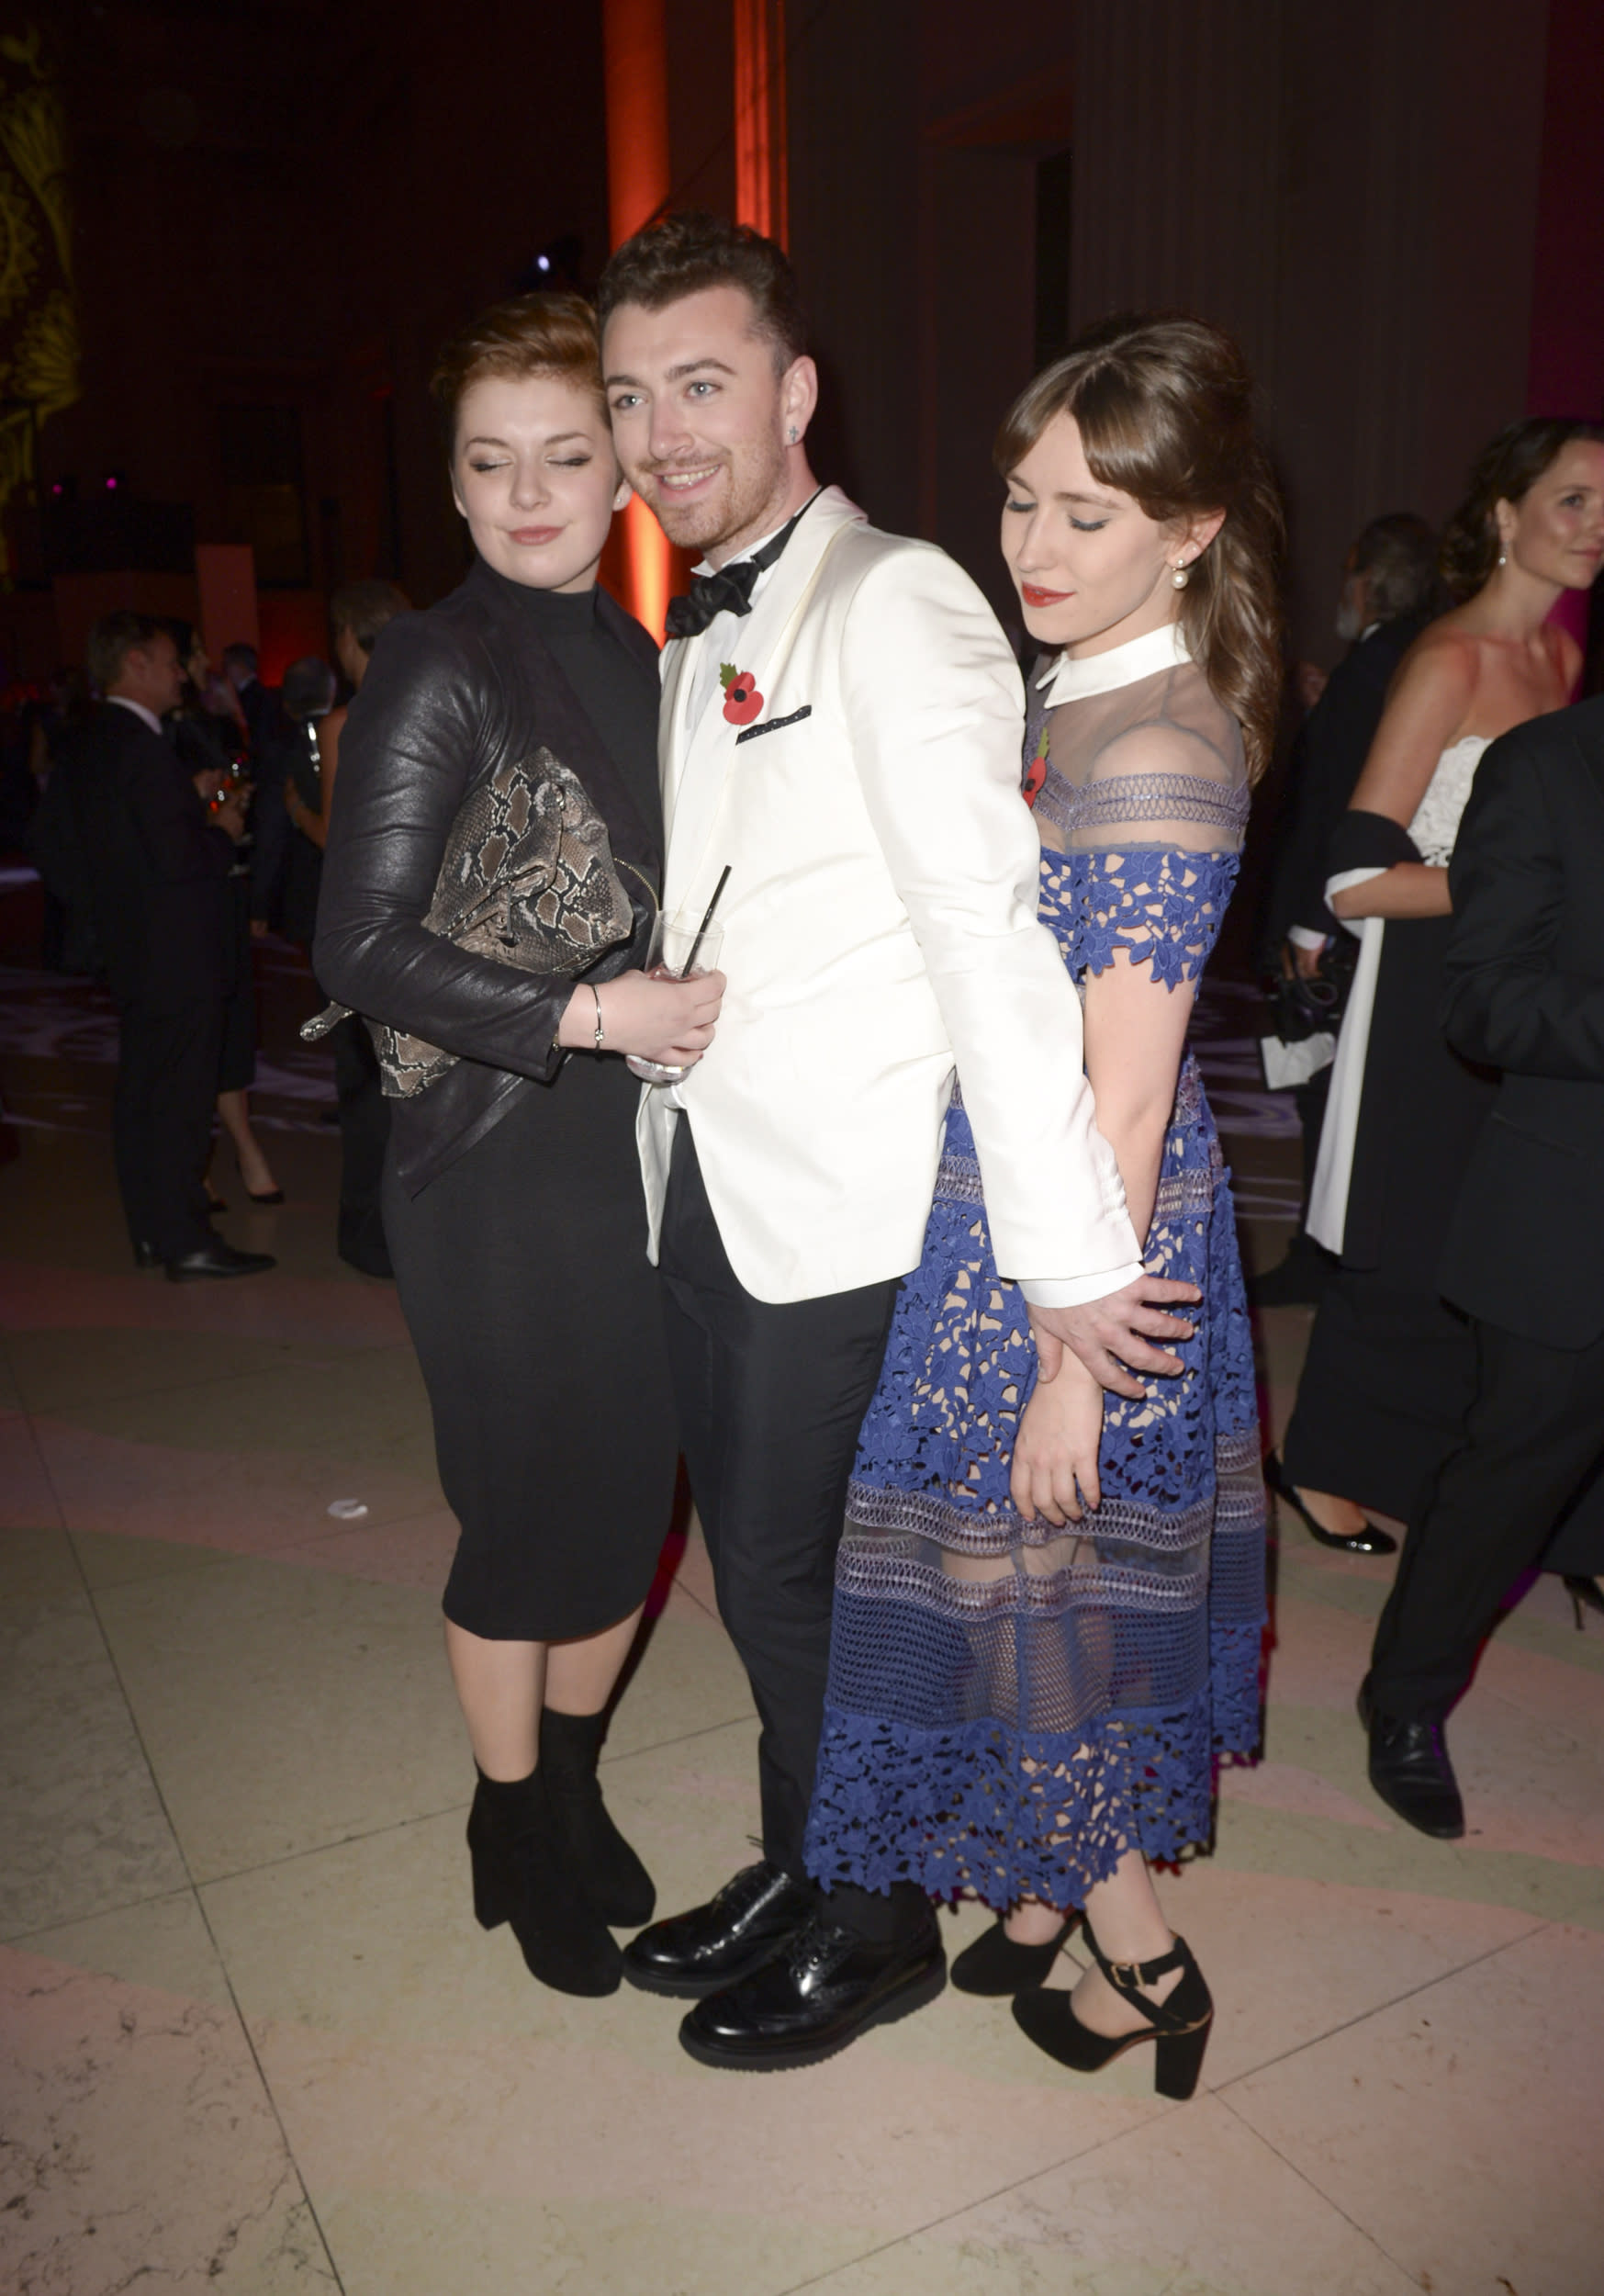 Sam Smith attending the Spectre after party held at the British Museum in London